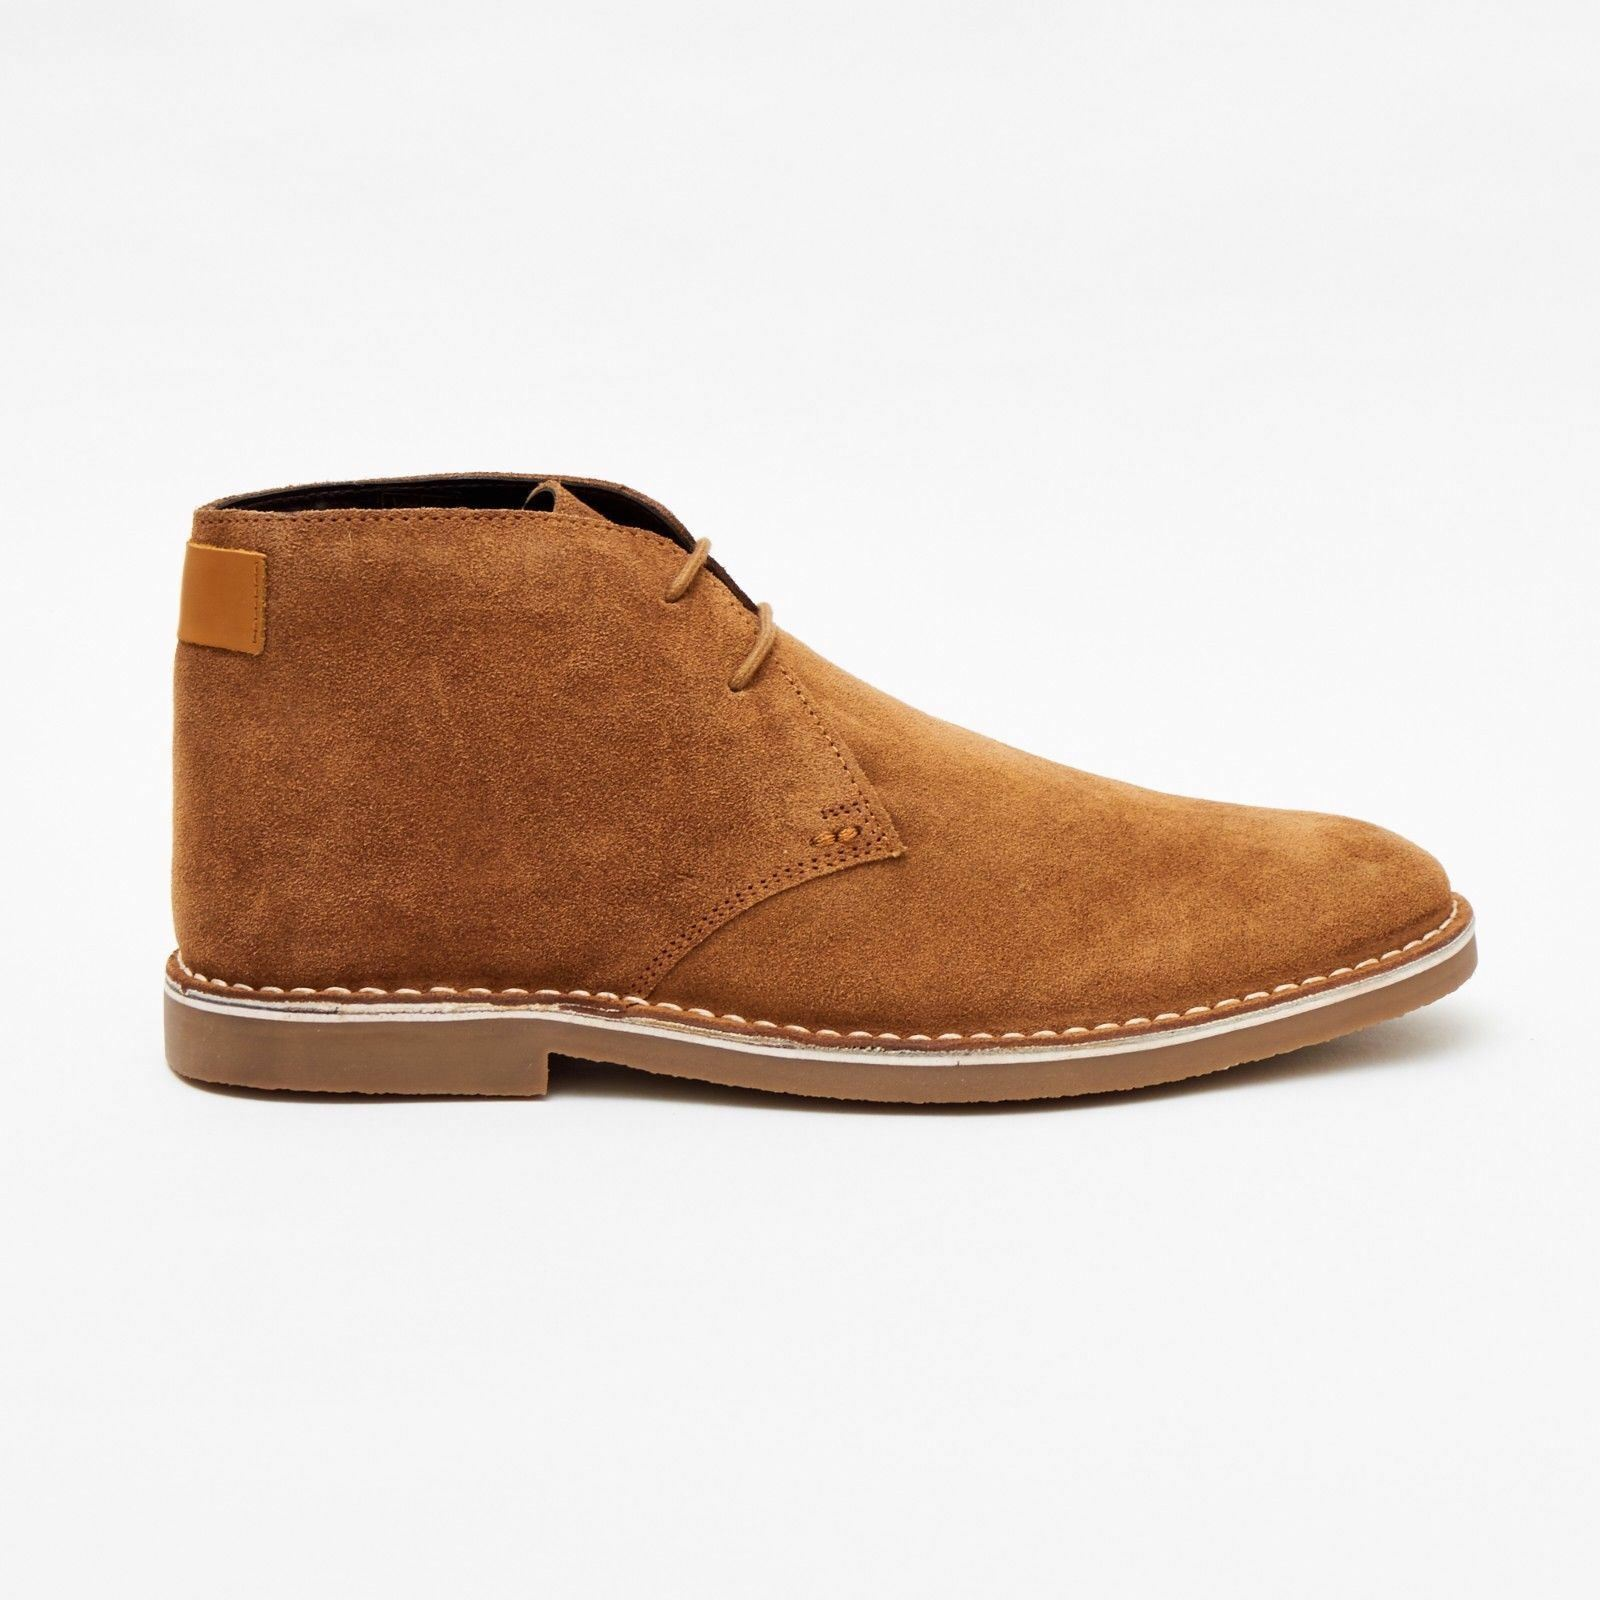 Lucini Men Braun Tan Suede Lace Up Stiefel Desert Chukka 2 Eyelet Stiefel Up Chisel Toe 8dbba6